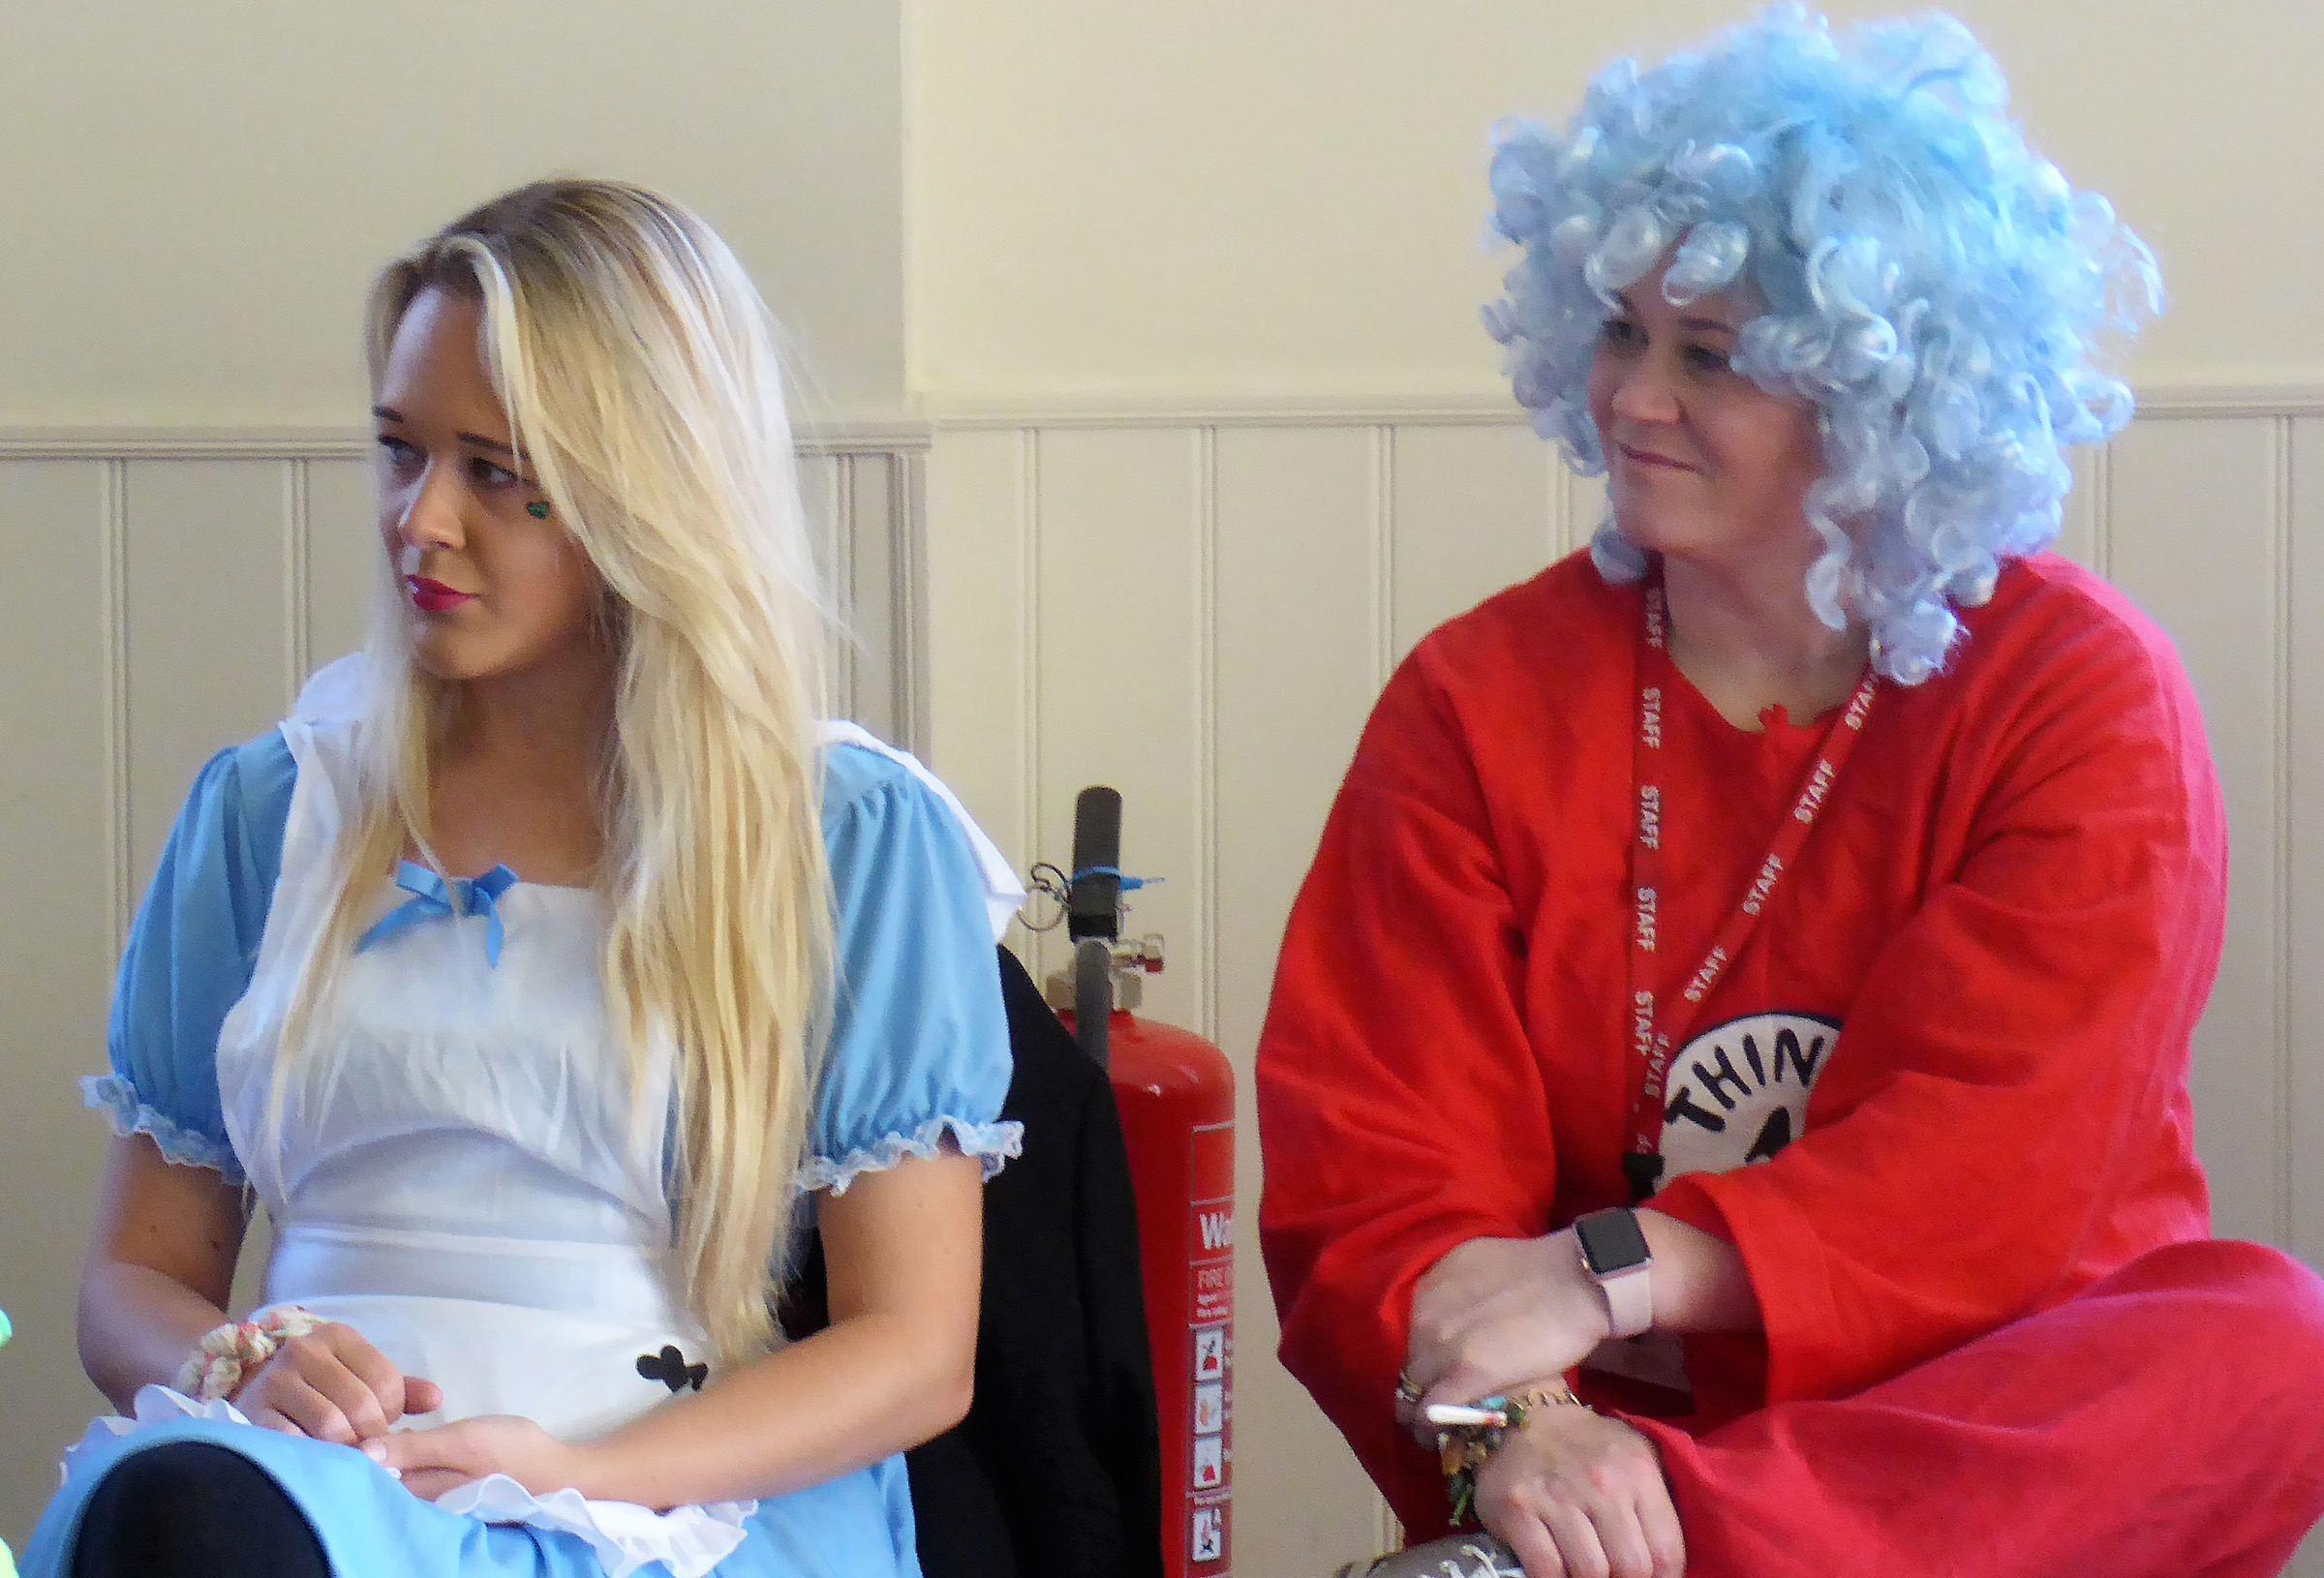 Pic 6 - Holy Cross Staff as Alice in Wonderland and Thing 1